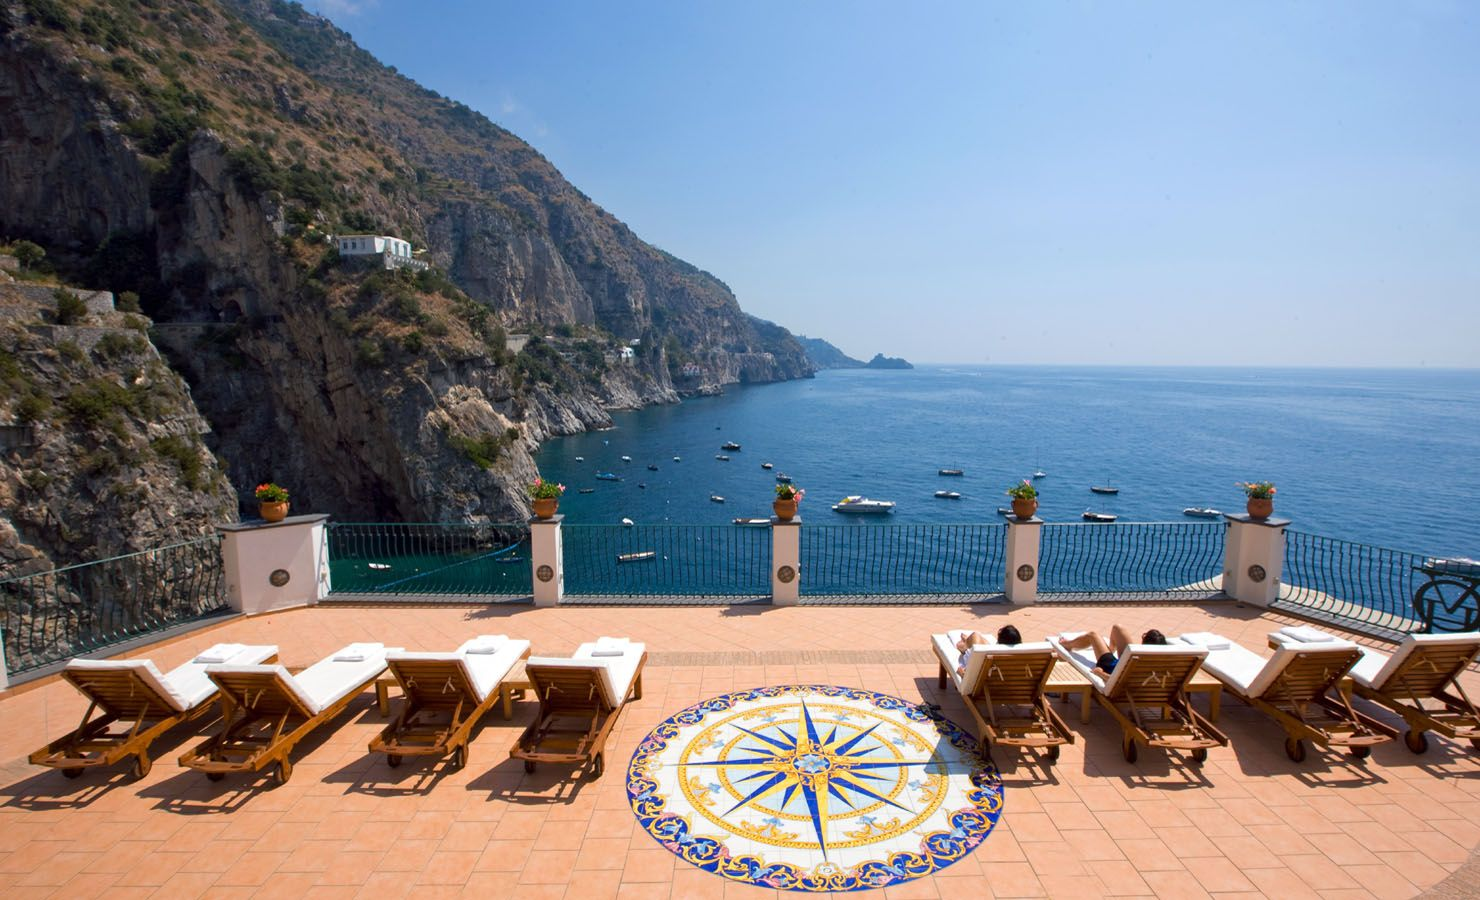 Amalfi Coast Hotels Hotel Onda Verde Between And Positano